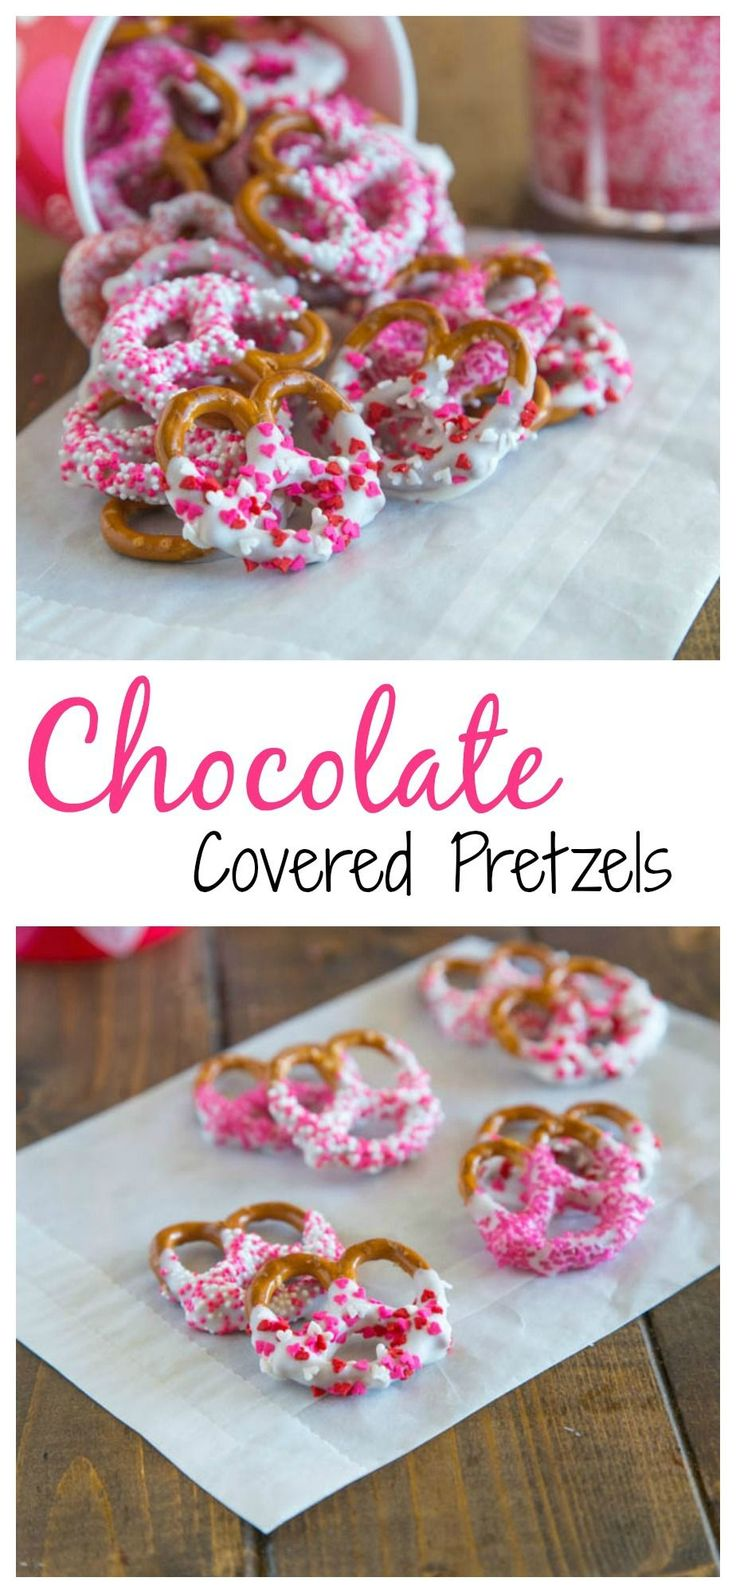 Chocolate Covered Pretzels Super Easy And Fun Treat For